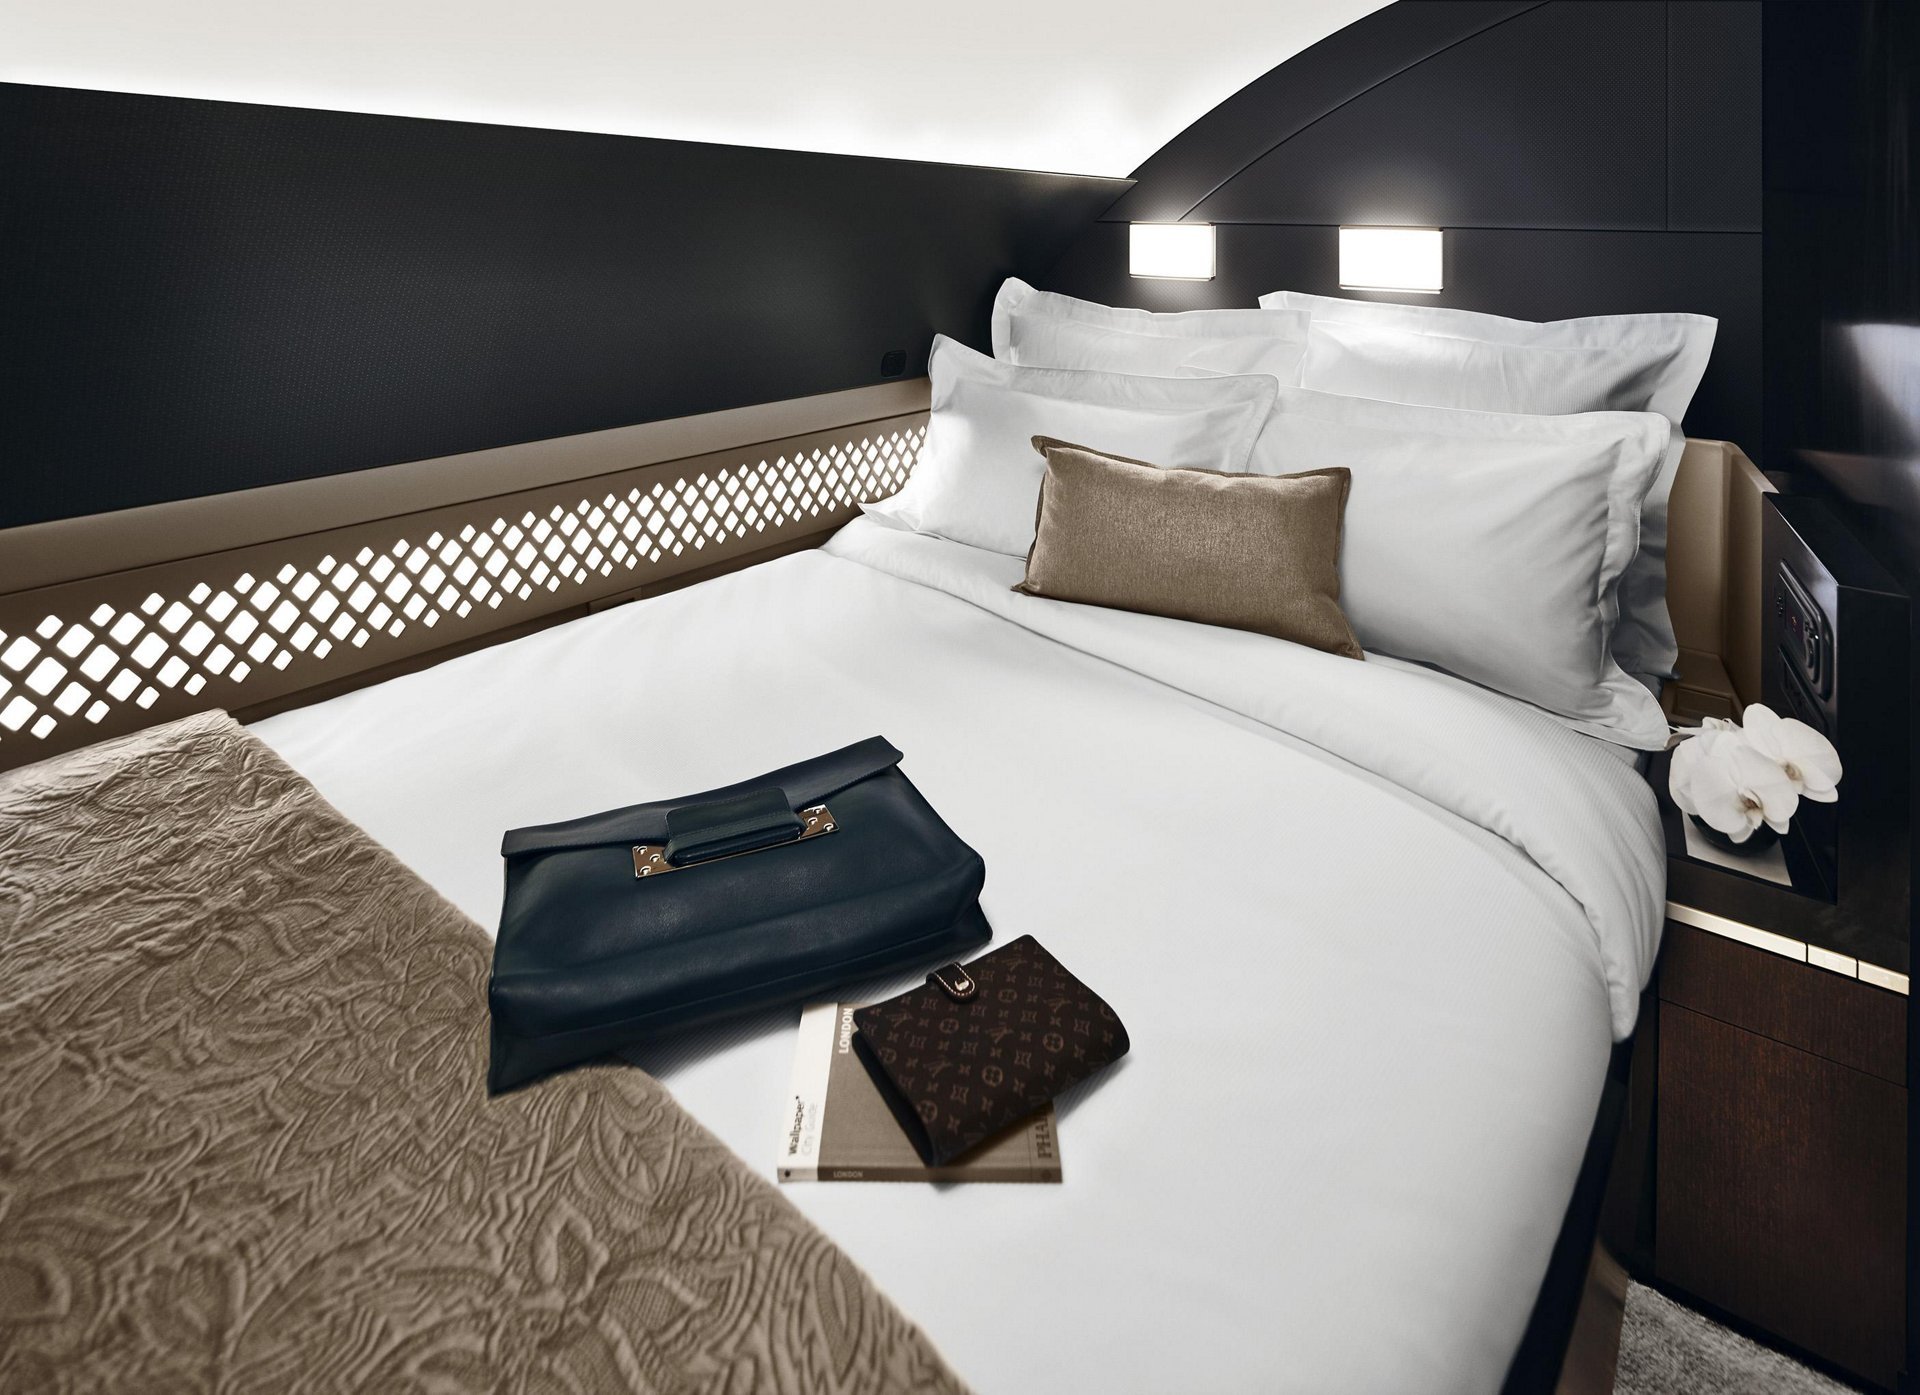 A380 Etihad The Residence bedroom